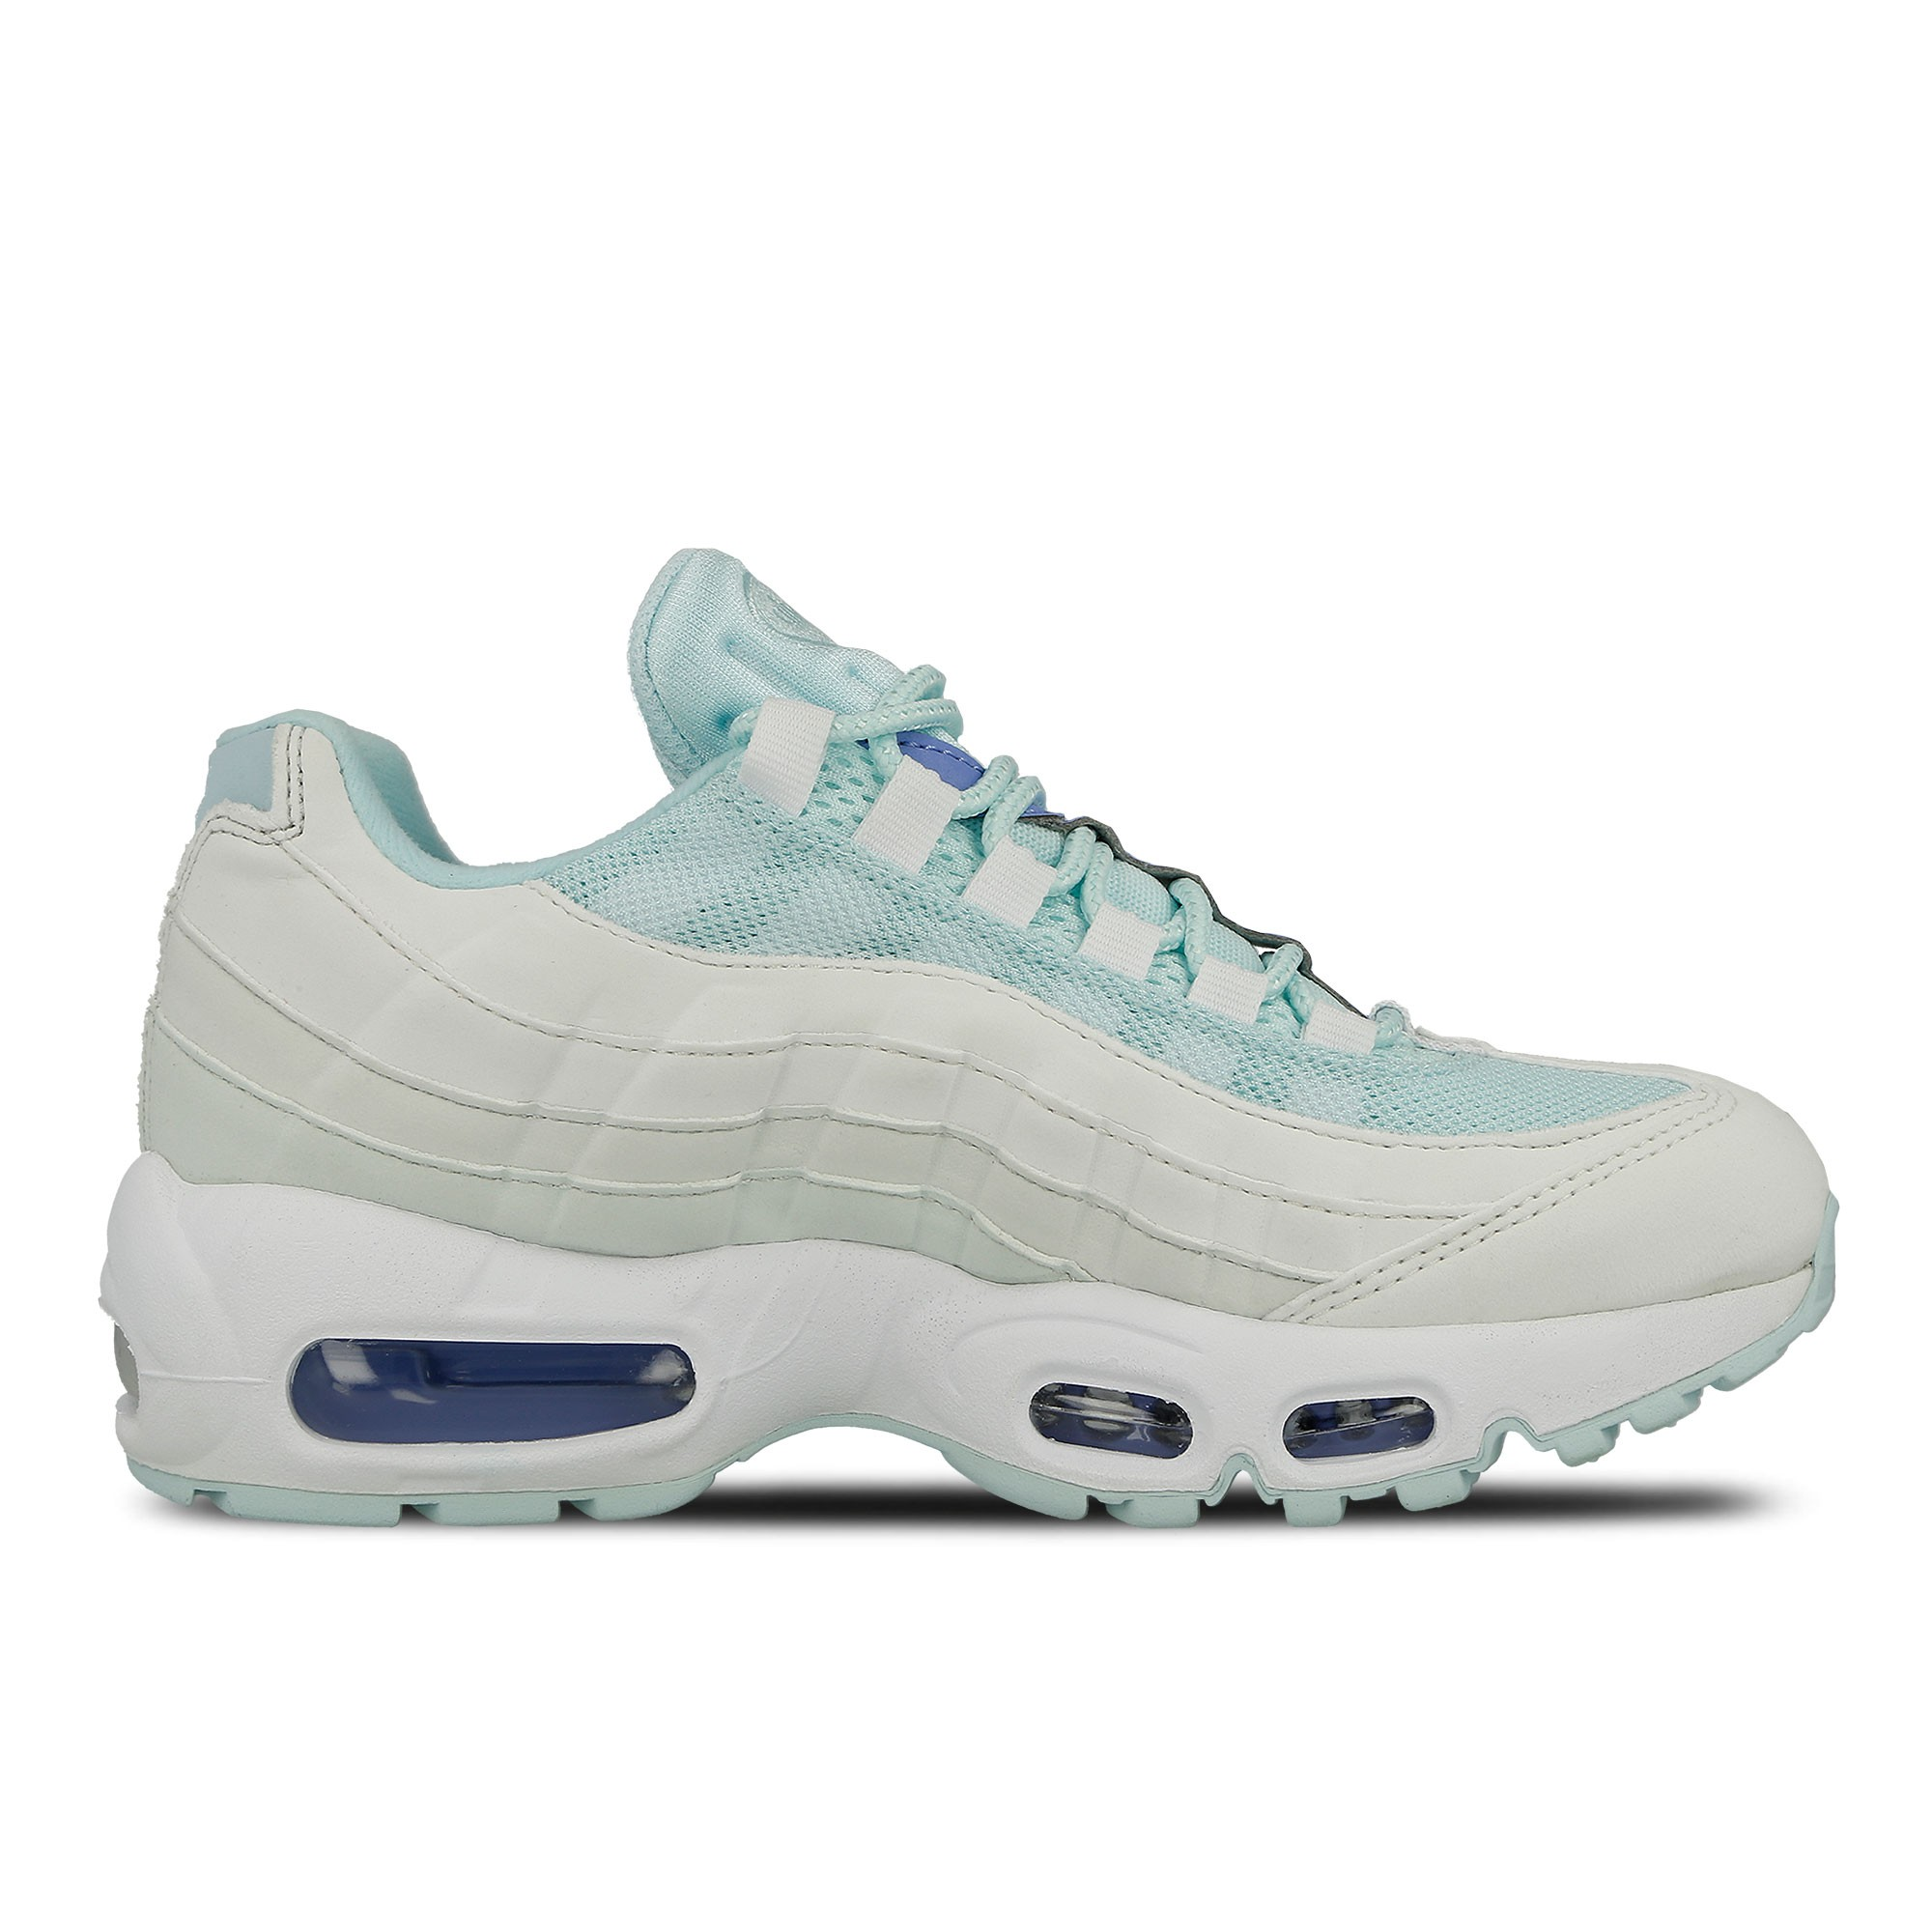 Nike Air Max 95' Tint Teal-Royal Blue